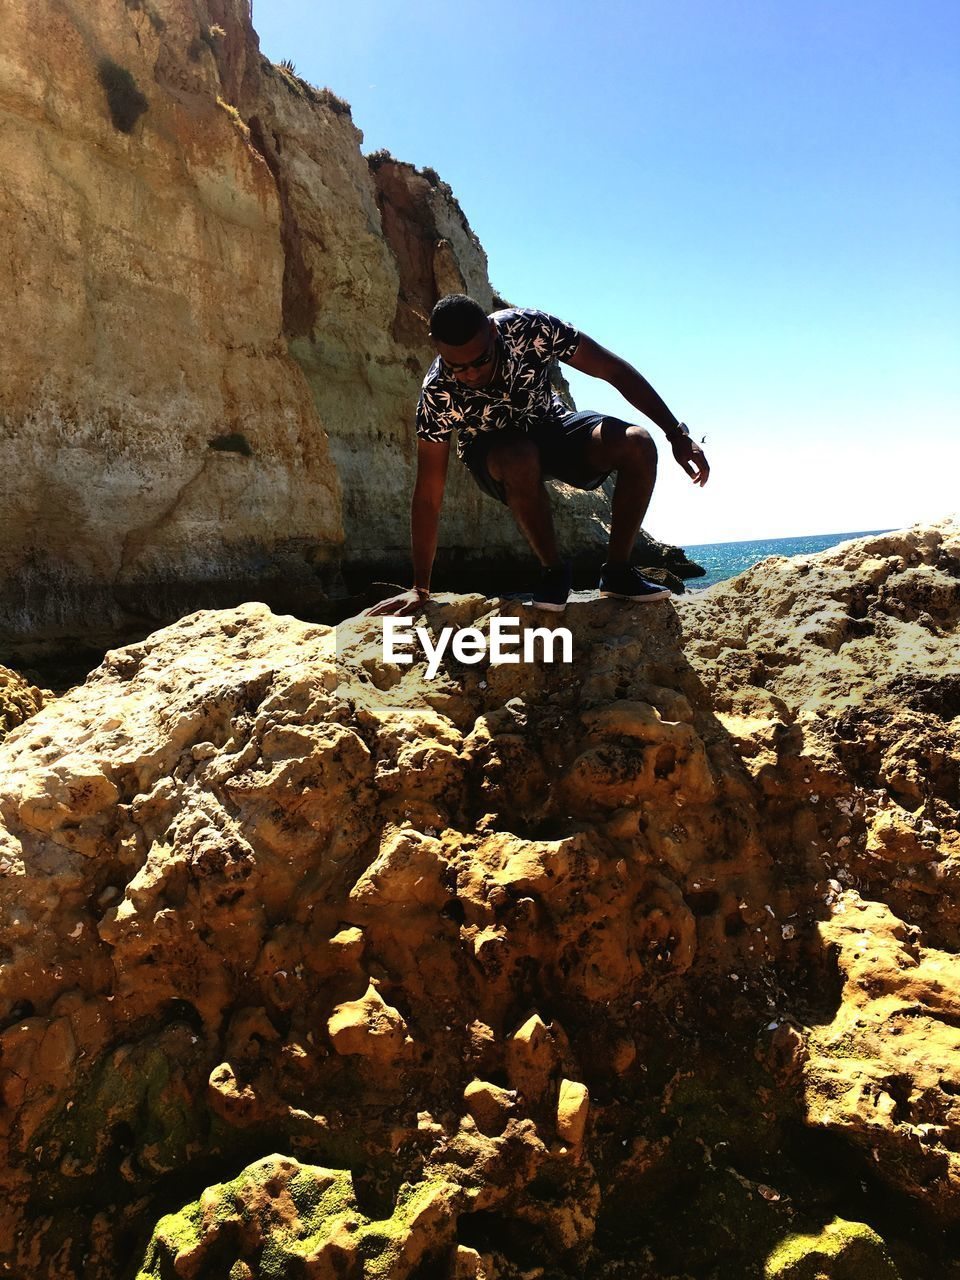 rock, solid, rock - object, sky, rock formation, nature, real people, day, clear sky, sunlight, one person, full length, leisure activity, lifestyles, outdoors, men, mountain, low angle view, adventure